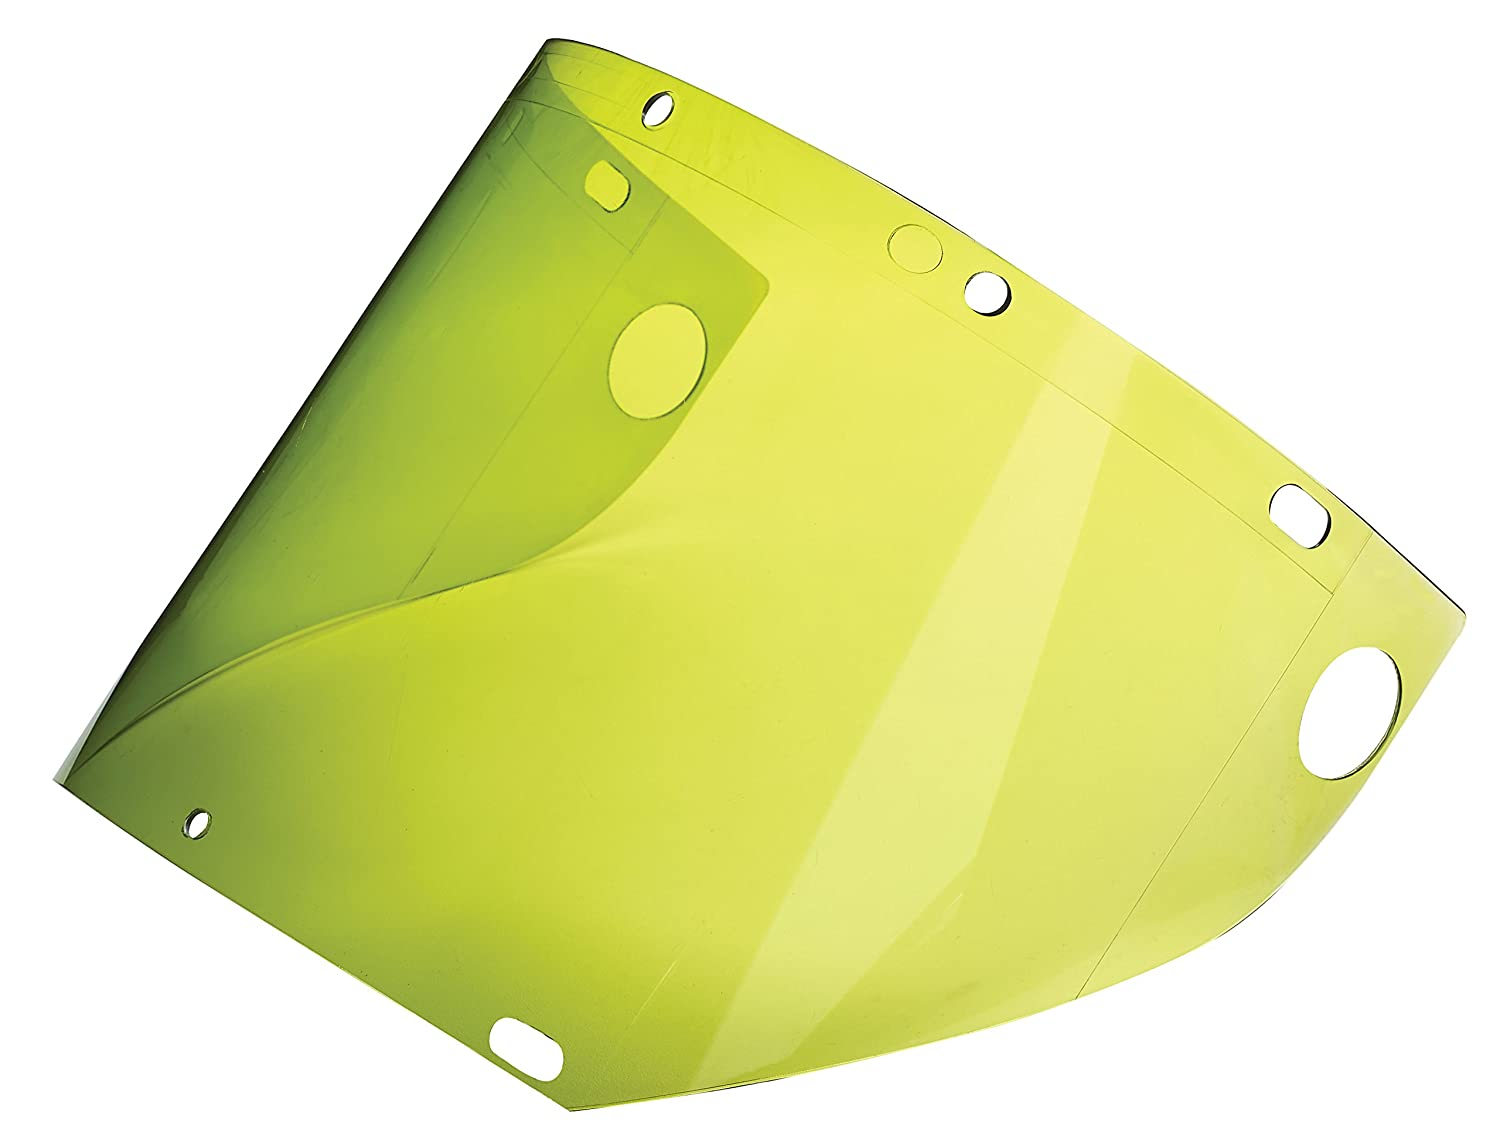 9.5 x 20 0.060 //1.5 mm with Holes at The Bottom to Fit on Chin Guard EPCG500 9.5 x 20 0.060 //1.5 mm with Holes at The Bottom to Fit on Chin Guard EPCG500 Dynamic Safety EP919MGAFT//60 ARC Flash Molded Visor